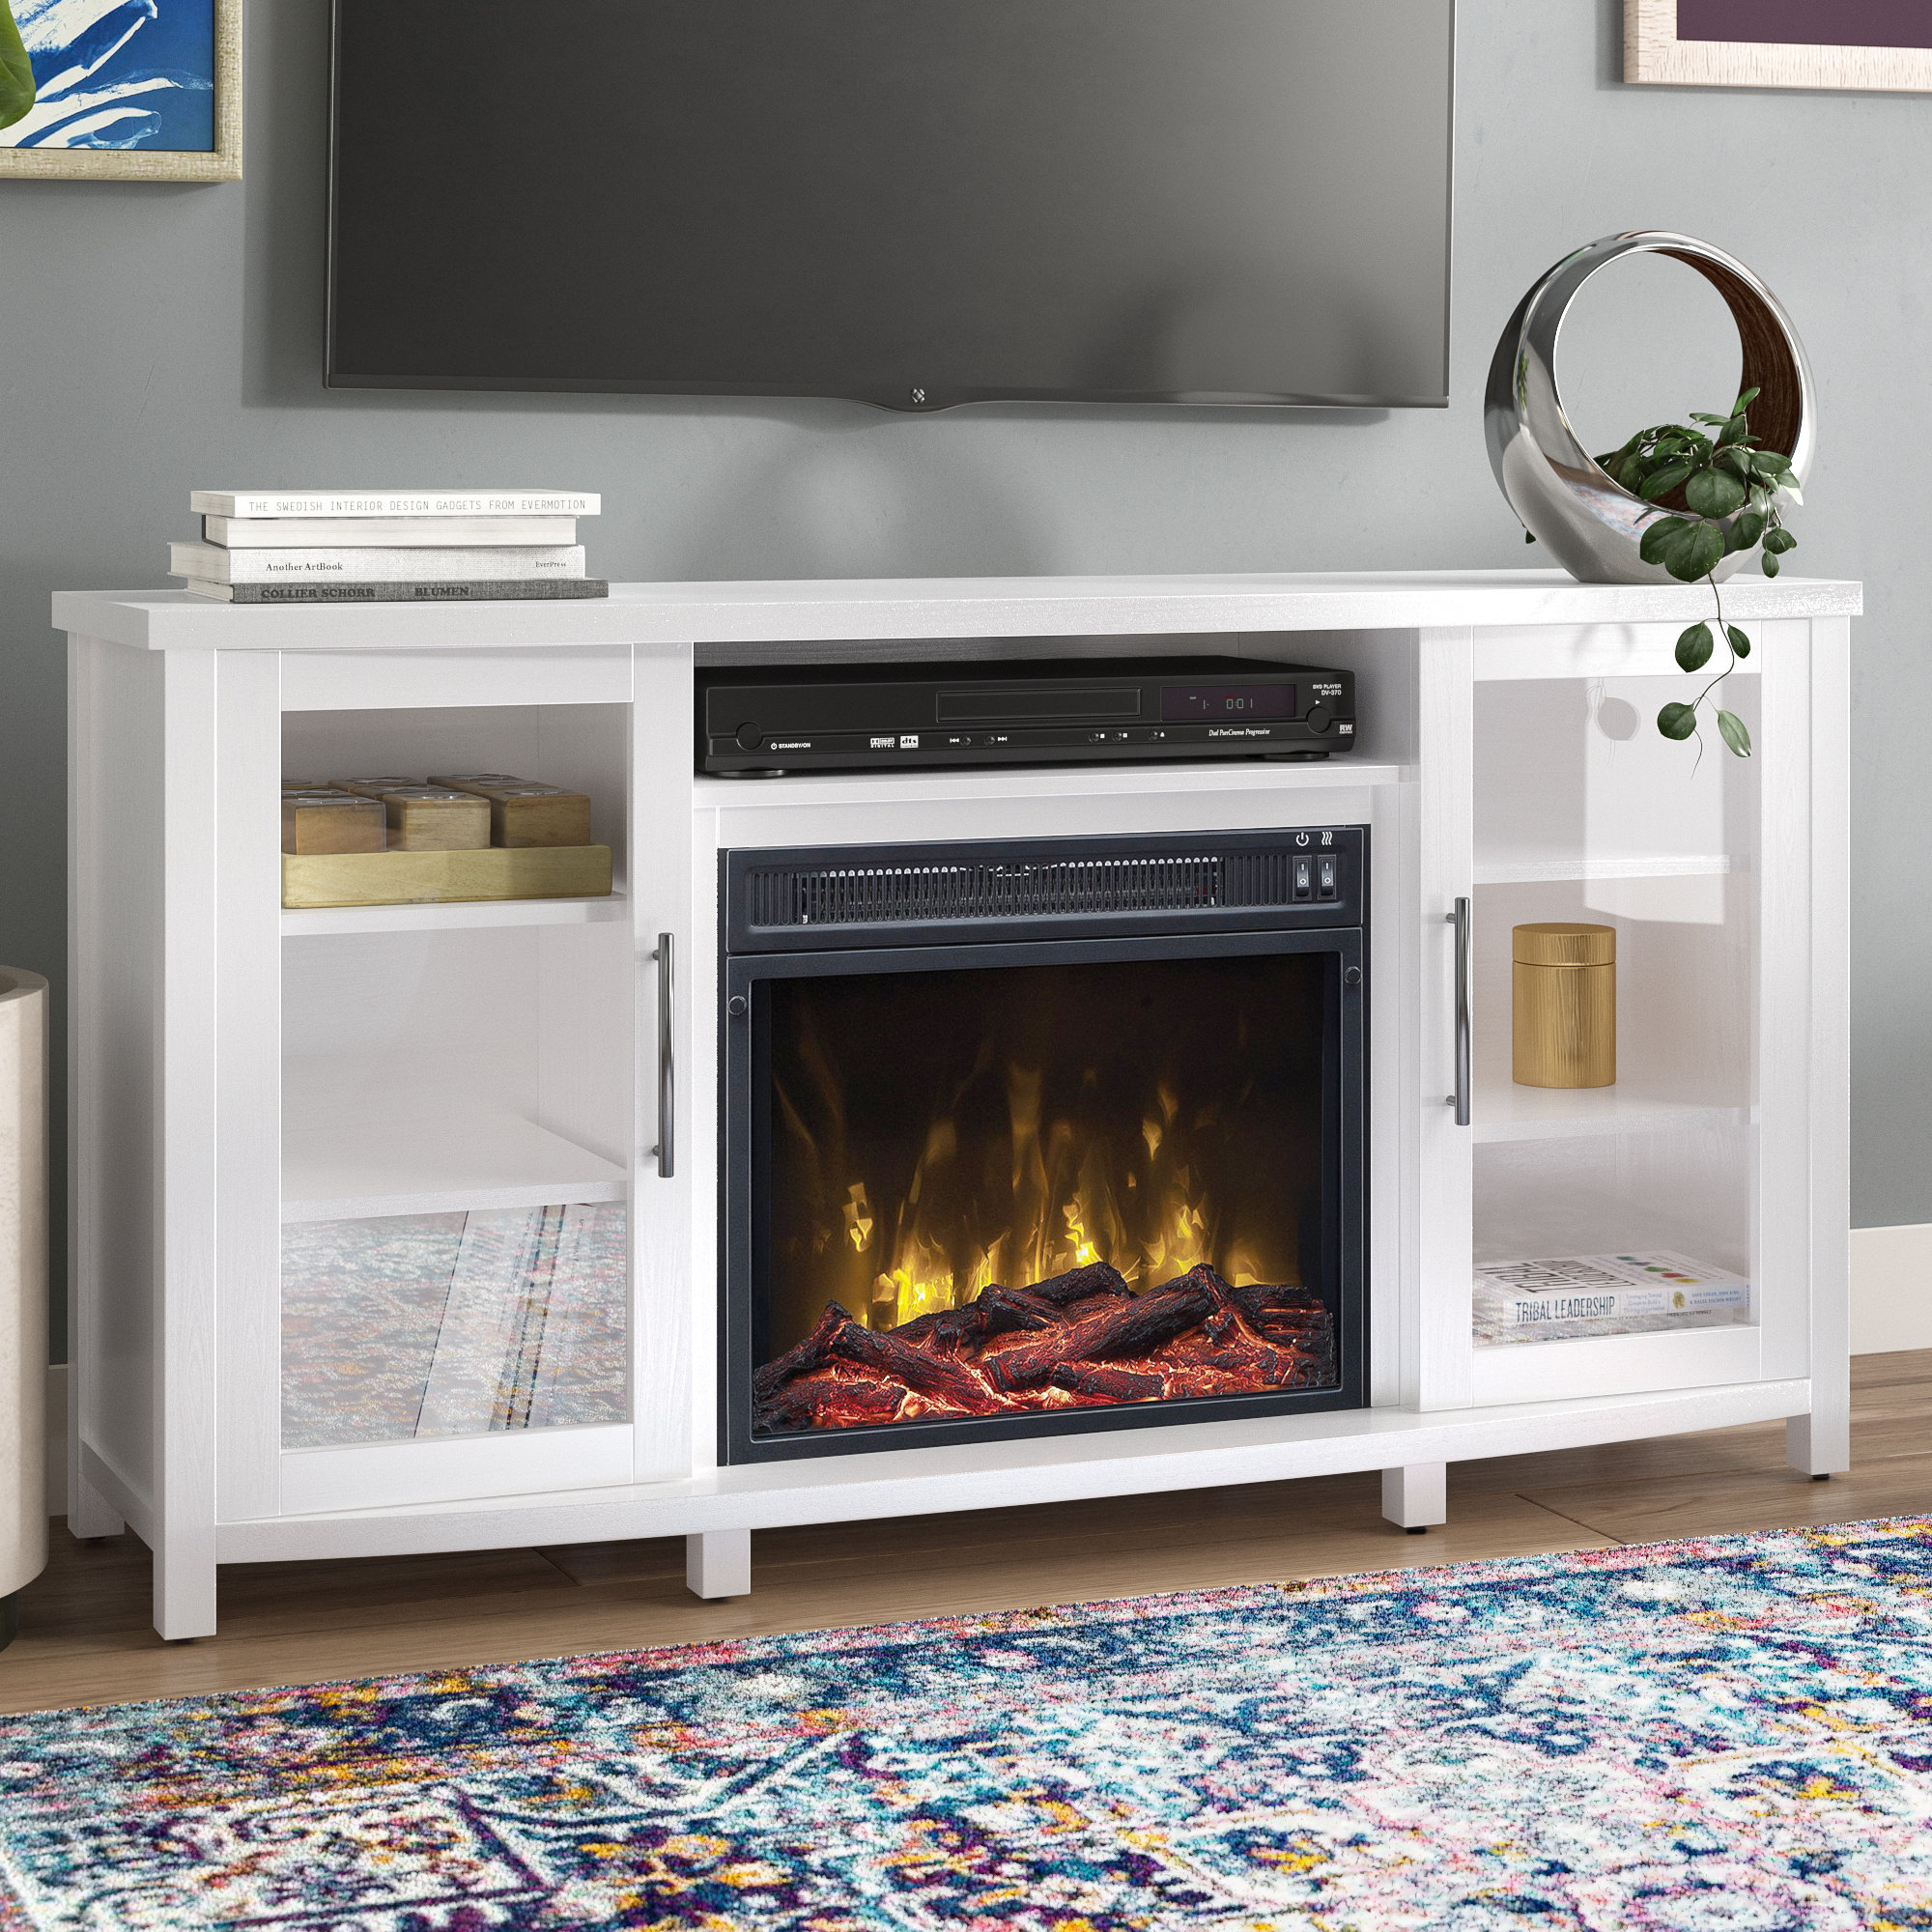 Fireplace Tv Stands & Entertainment Centers You'll Love | Wayfair.ca within Sinclair Blue 74 Inch Tv Stands (Image 13 of 30)